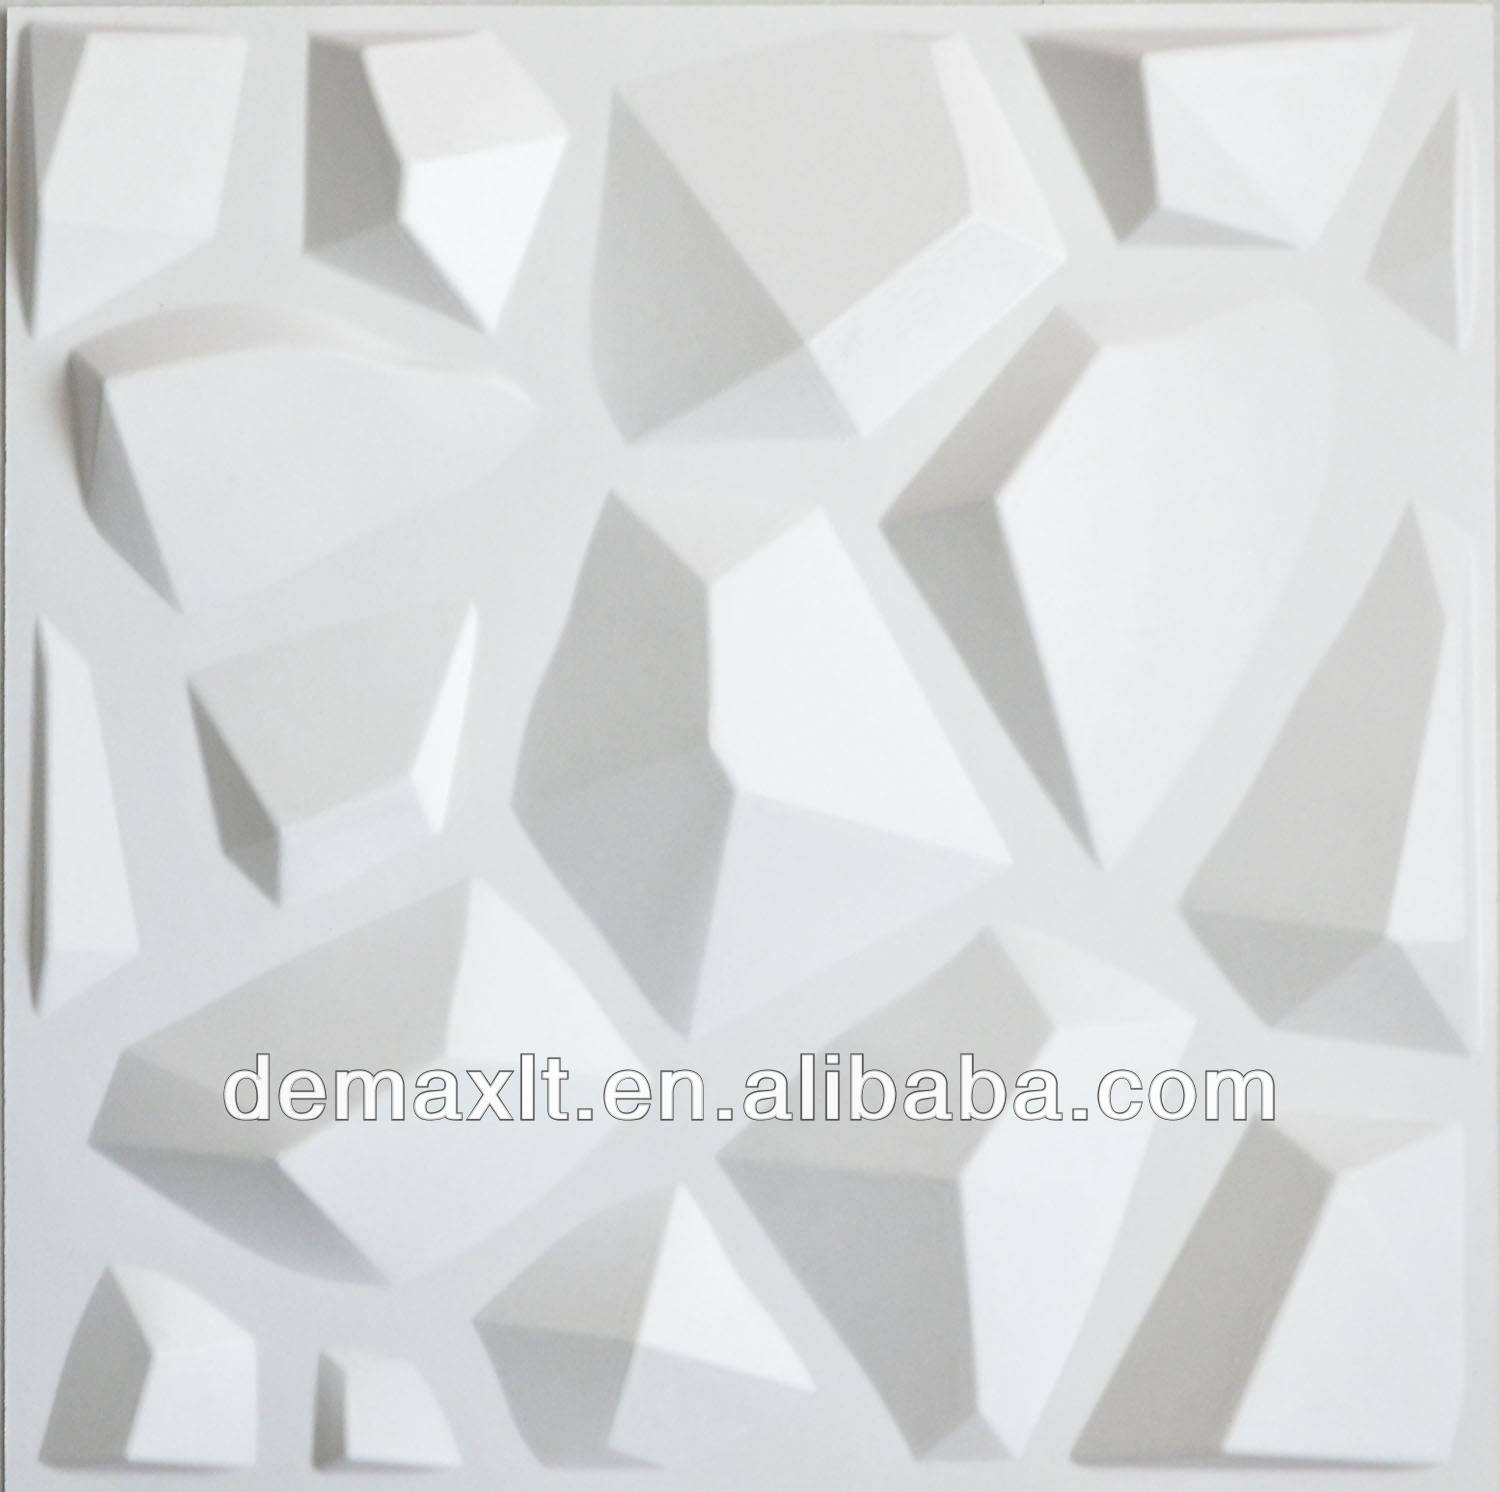 More In 3d On ~ Playuna Throughout Most Popular White 3d Wall Art (View 6 of 20)